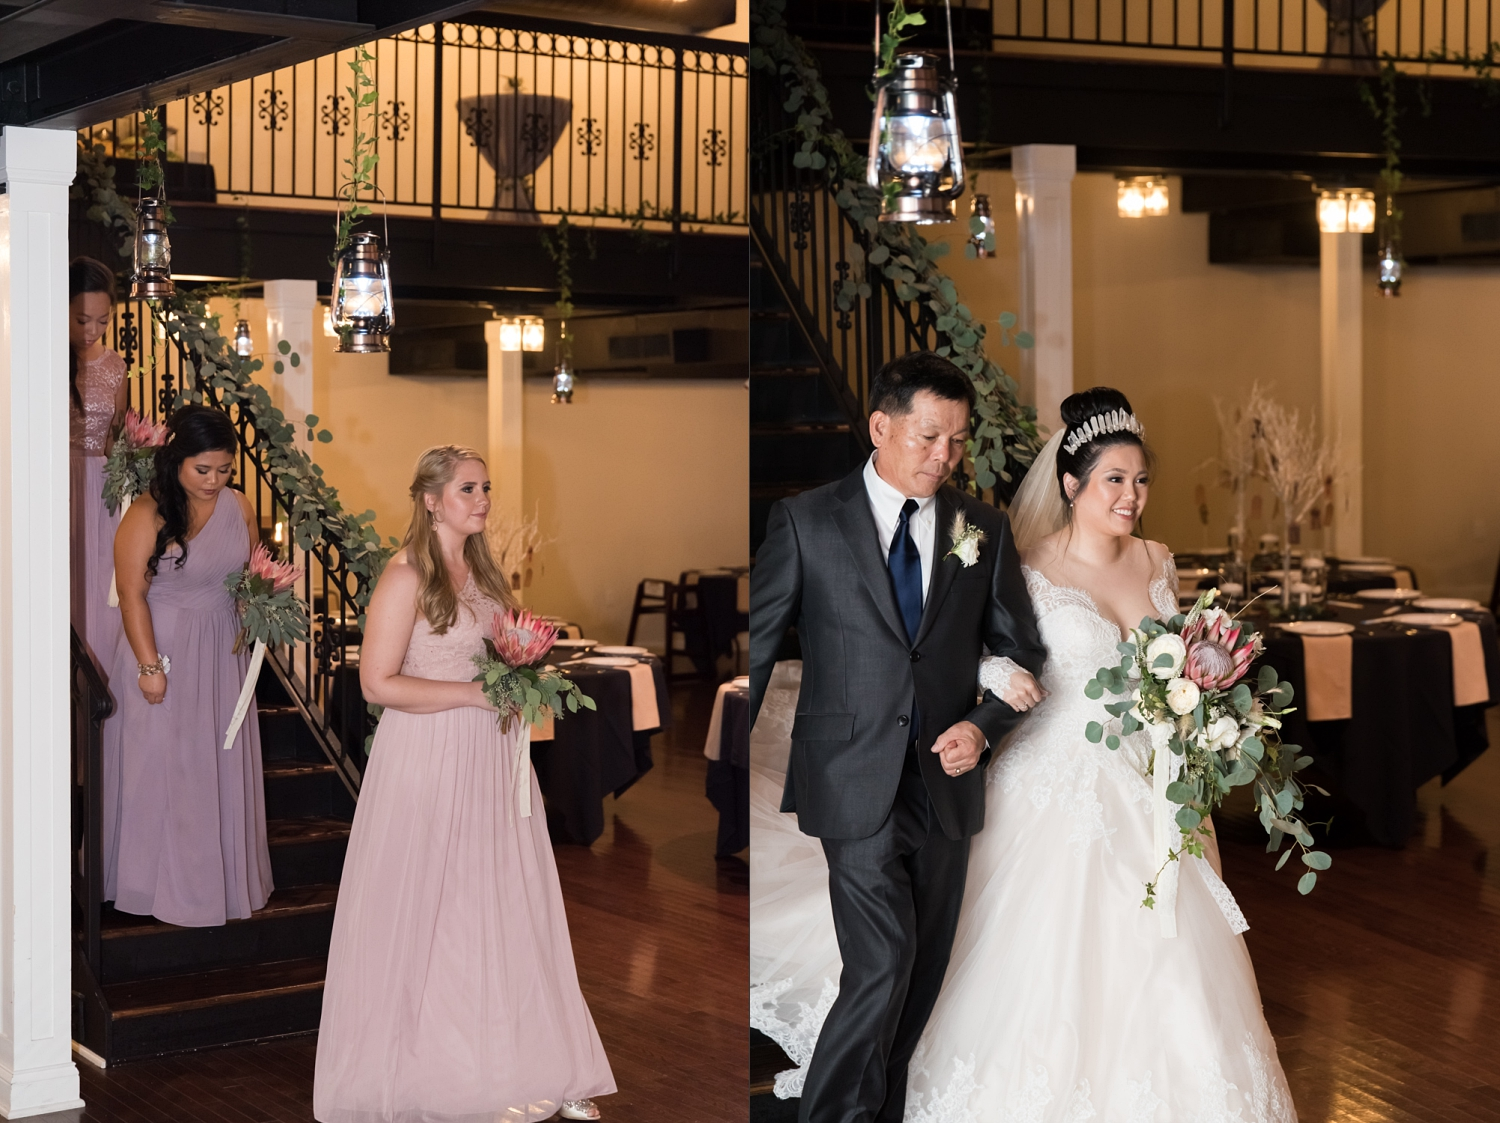 Rose Gold Wedding at Historic Post Office Virginia Harry Potter Themed Wedding-212_WEB.jpg